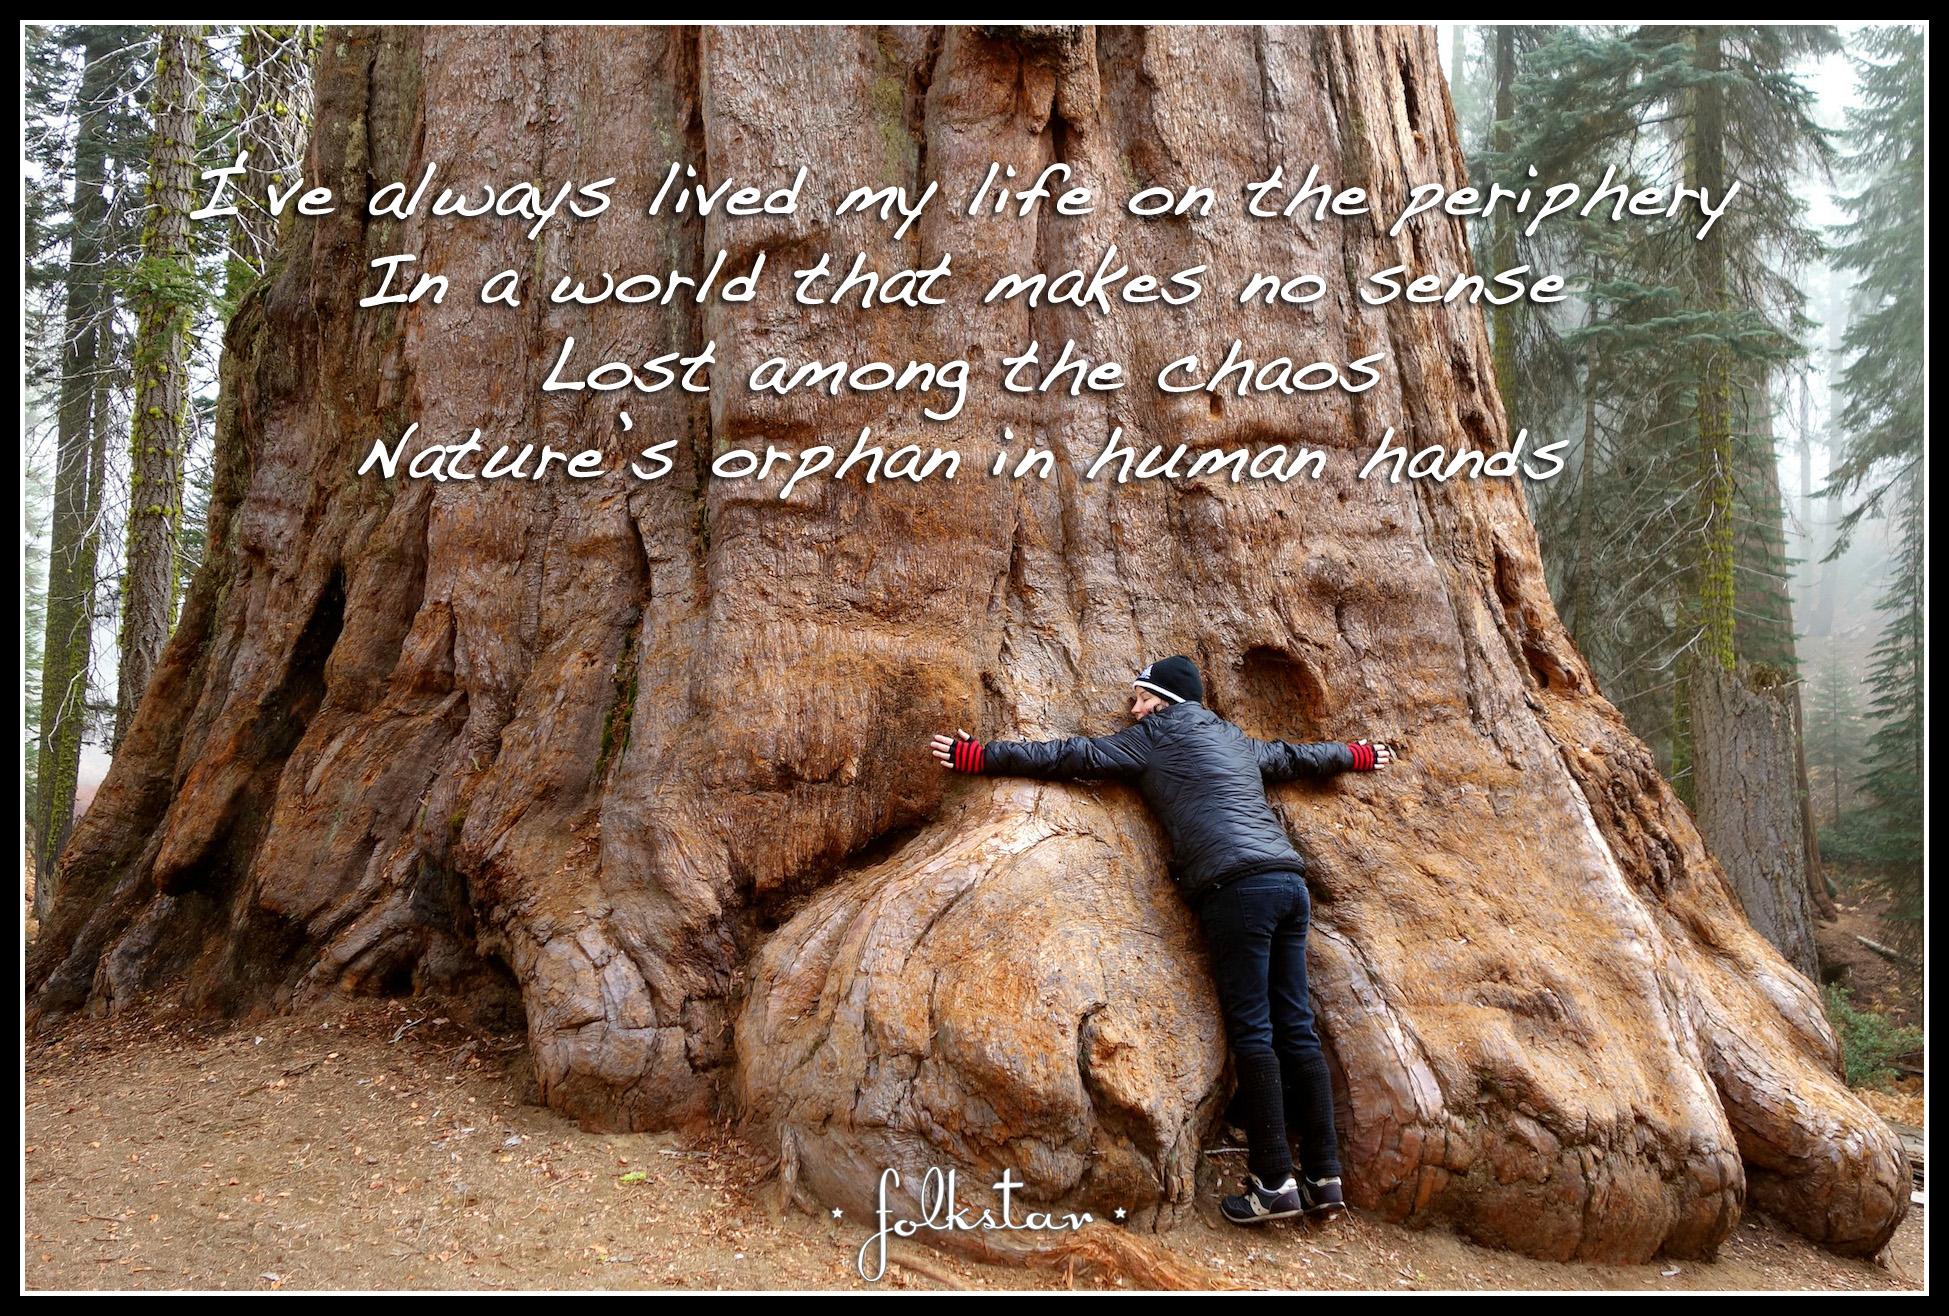 Treelines and Skylines Lyrical Snapshot - Sequoia